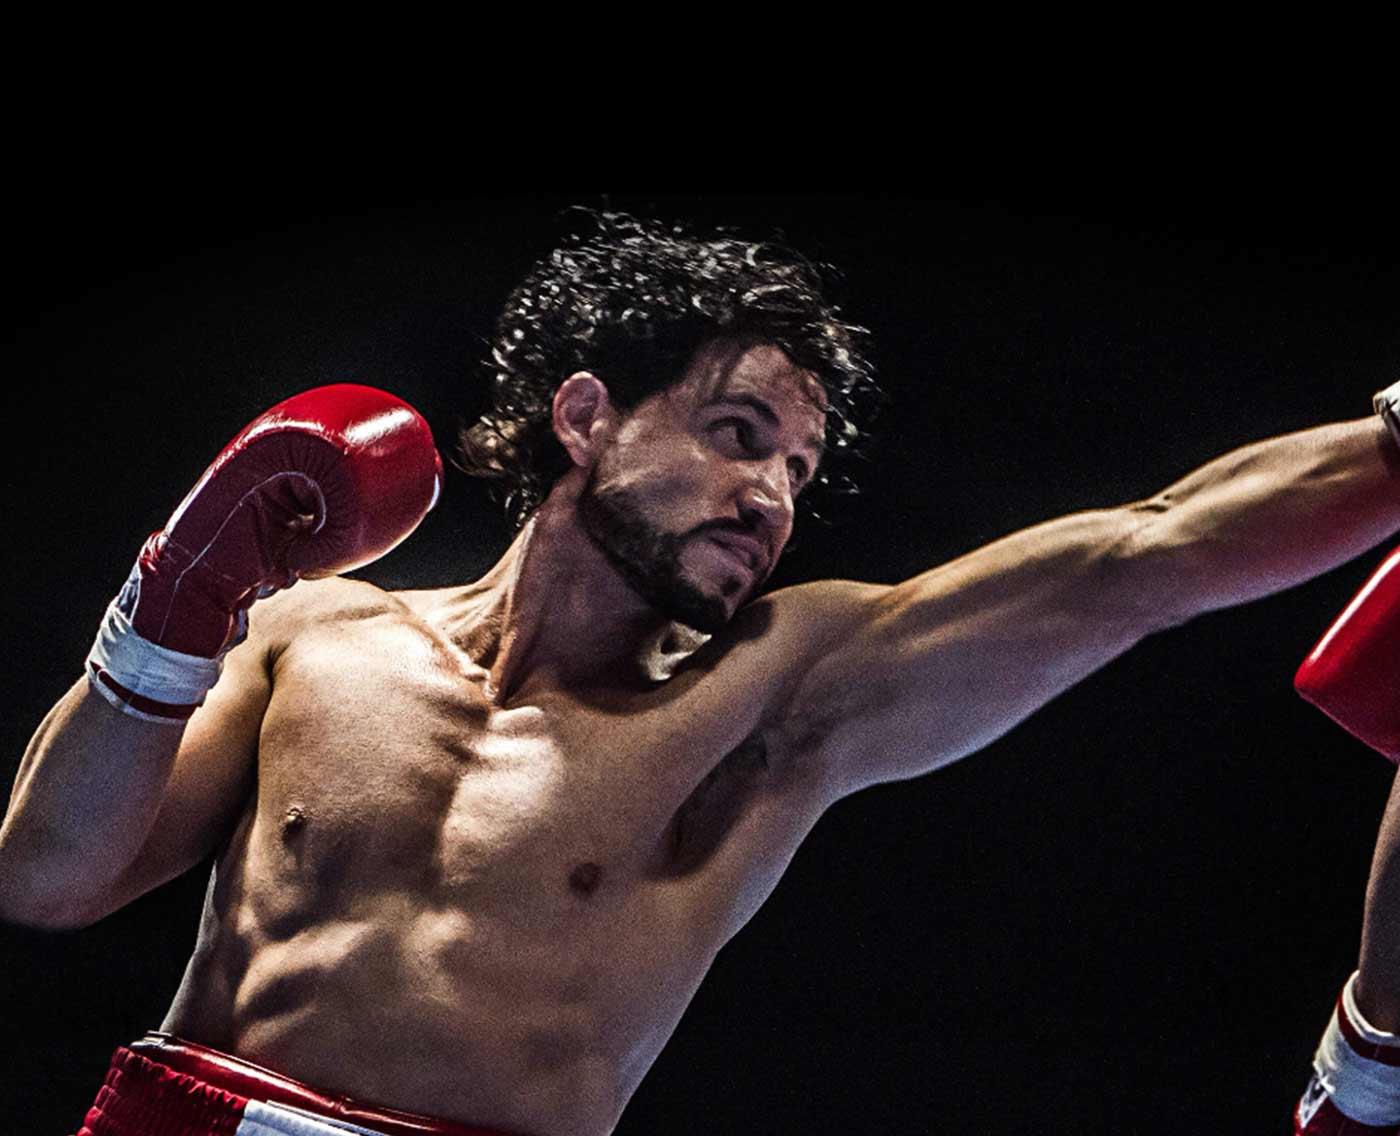 Check out the movie photos of 'Hands of Stone'